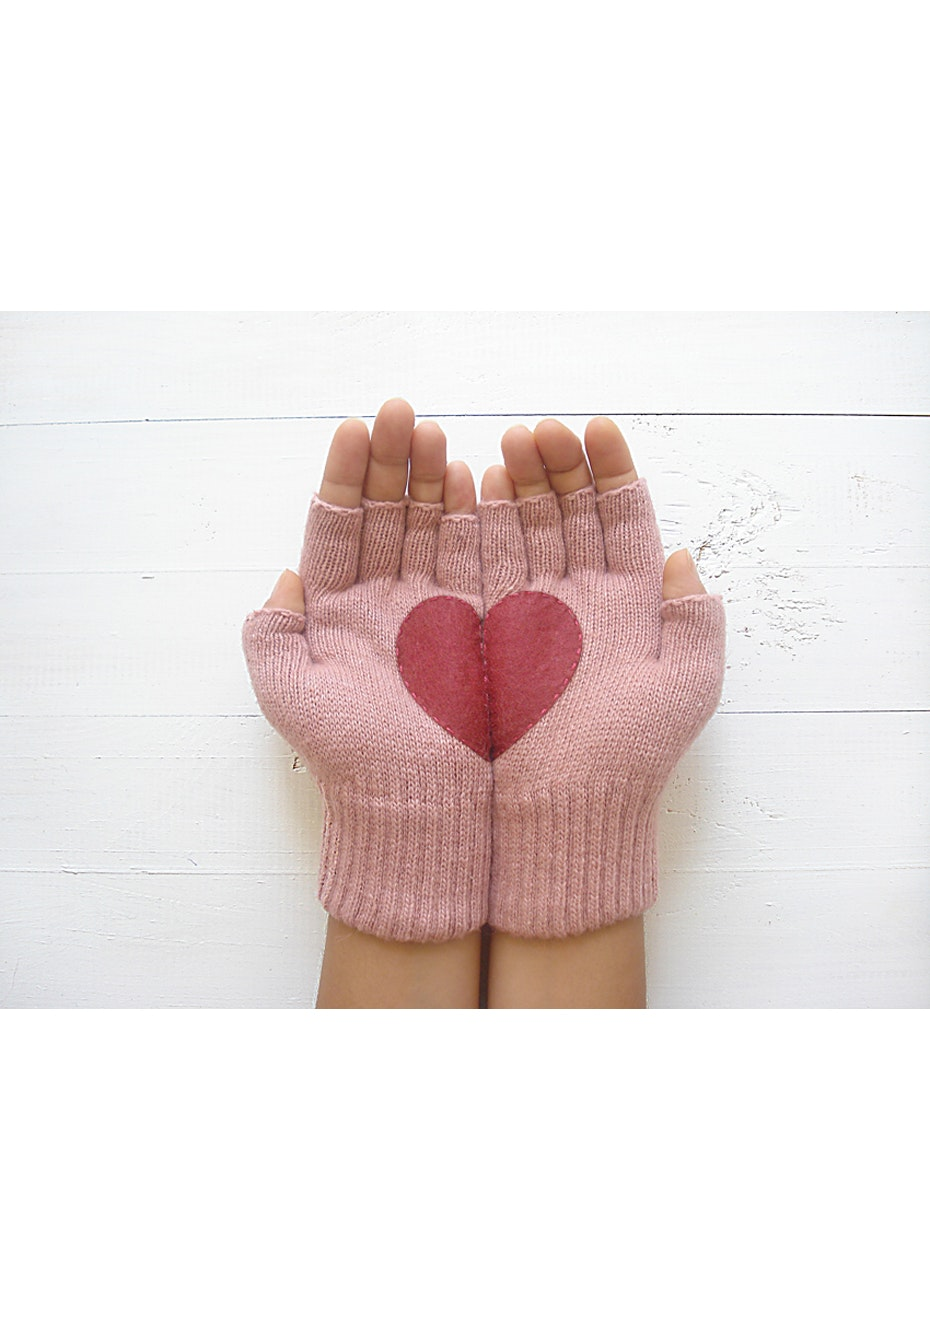 Heart Fingerless Gloves - Soft Pink/Red